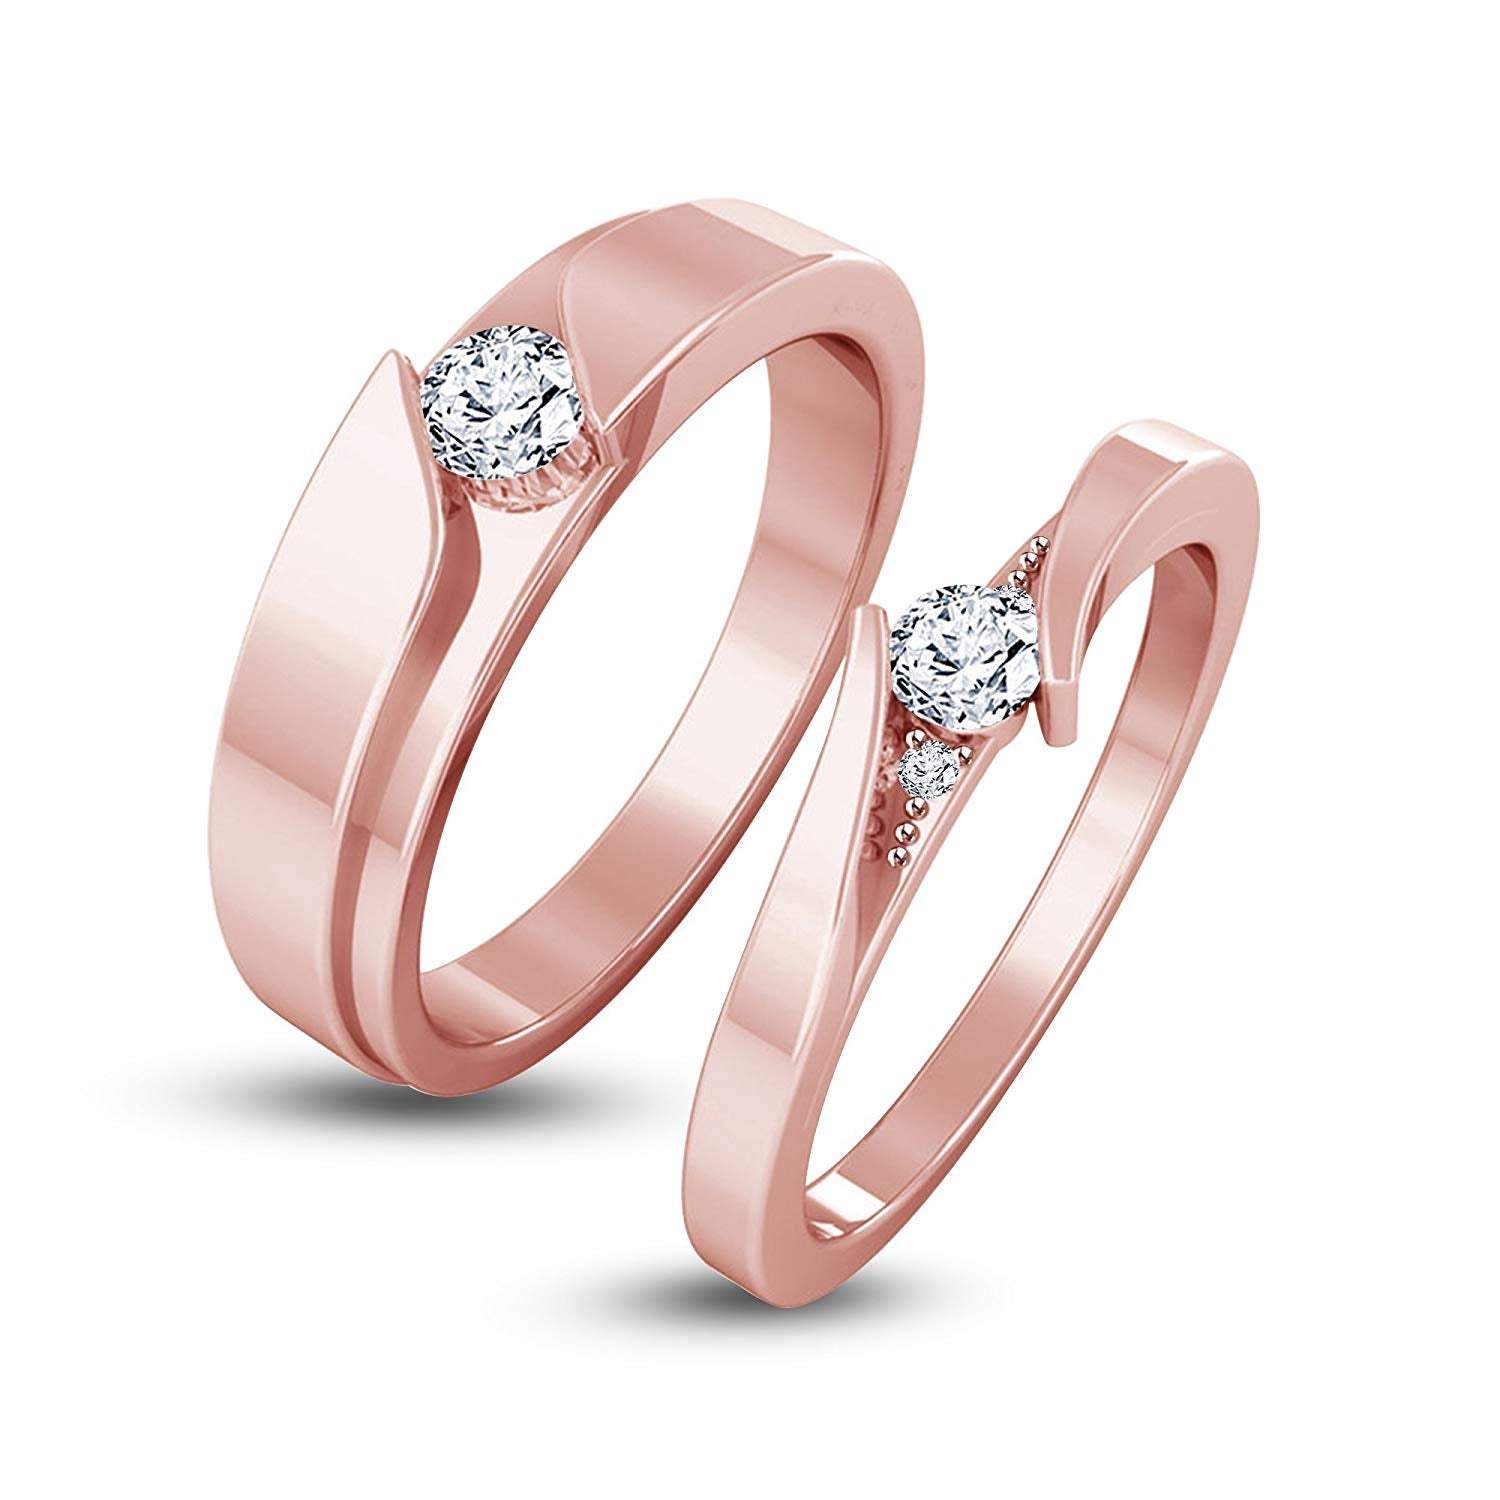 b528d4c7cd atjewels Elegant Couple Ring in 14K Rose Gold Plated on 925 Sterling Silver  White Zirconia MOTHER'S DAY SPECIAL OFFER. Size Charts